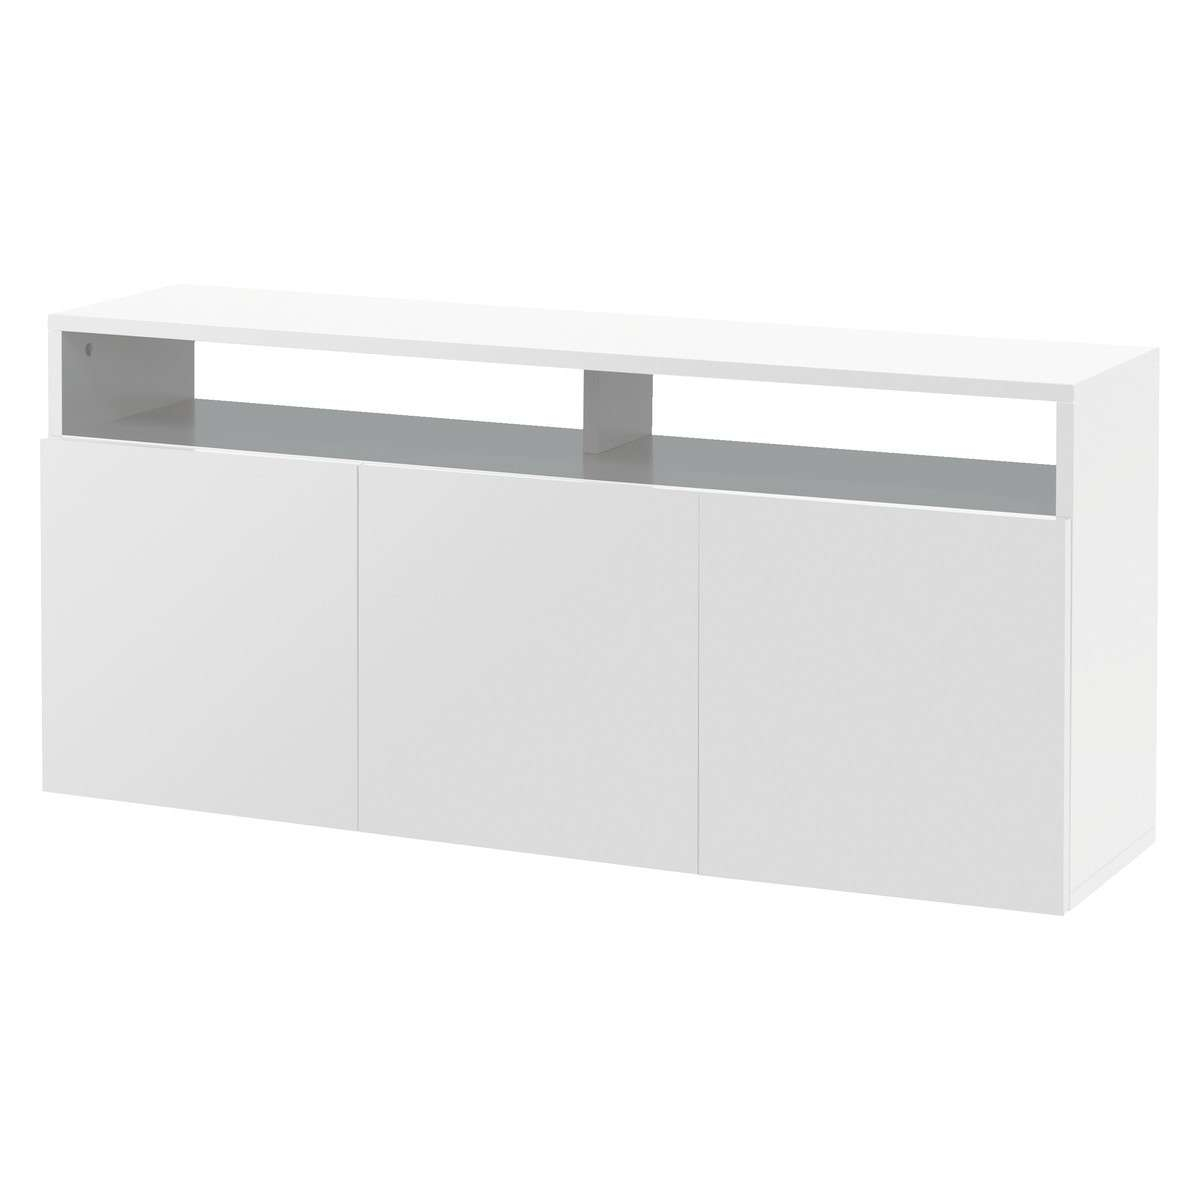 Kubrik White High Gloss Large Sideboard | Buy Now At Habitat Uk For Large White Sideboards (Gallery 3 of 20)